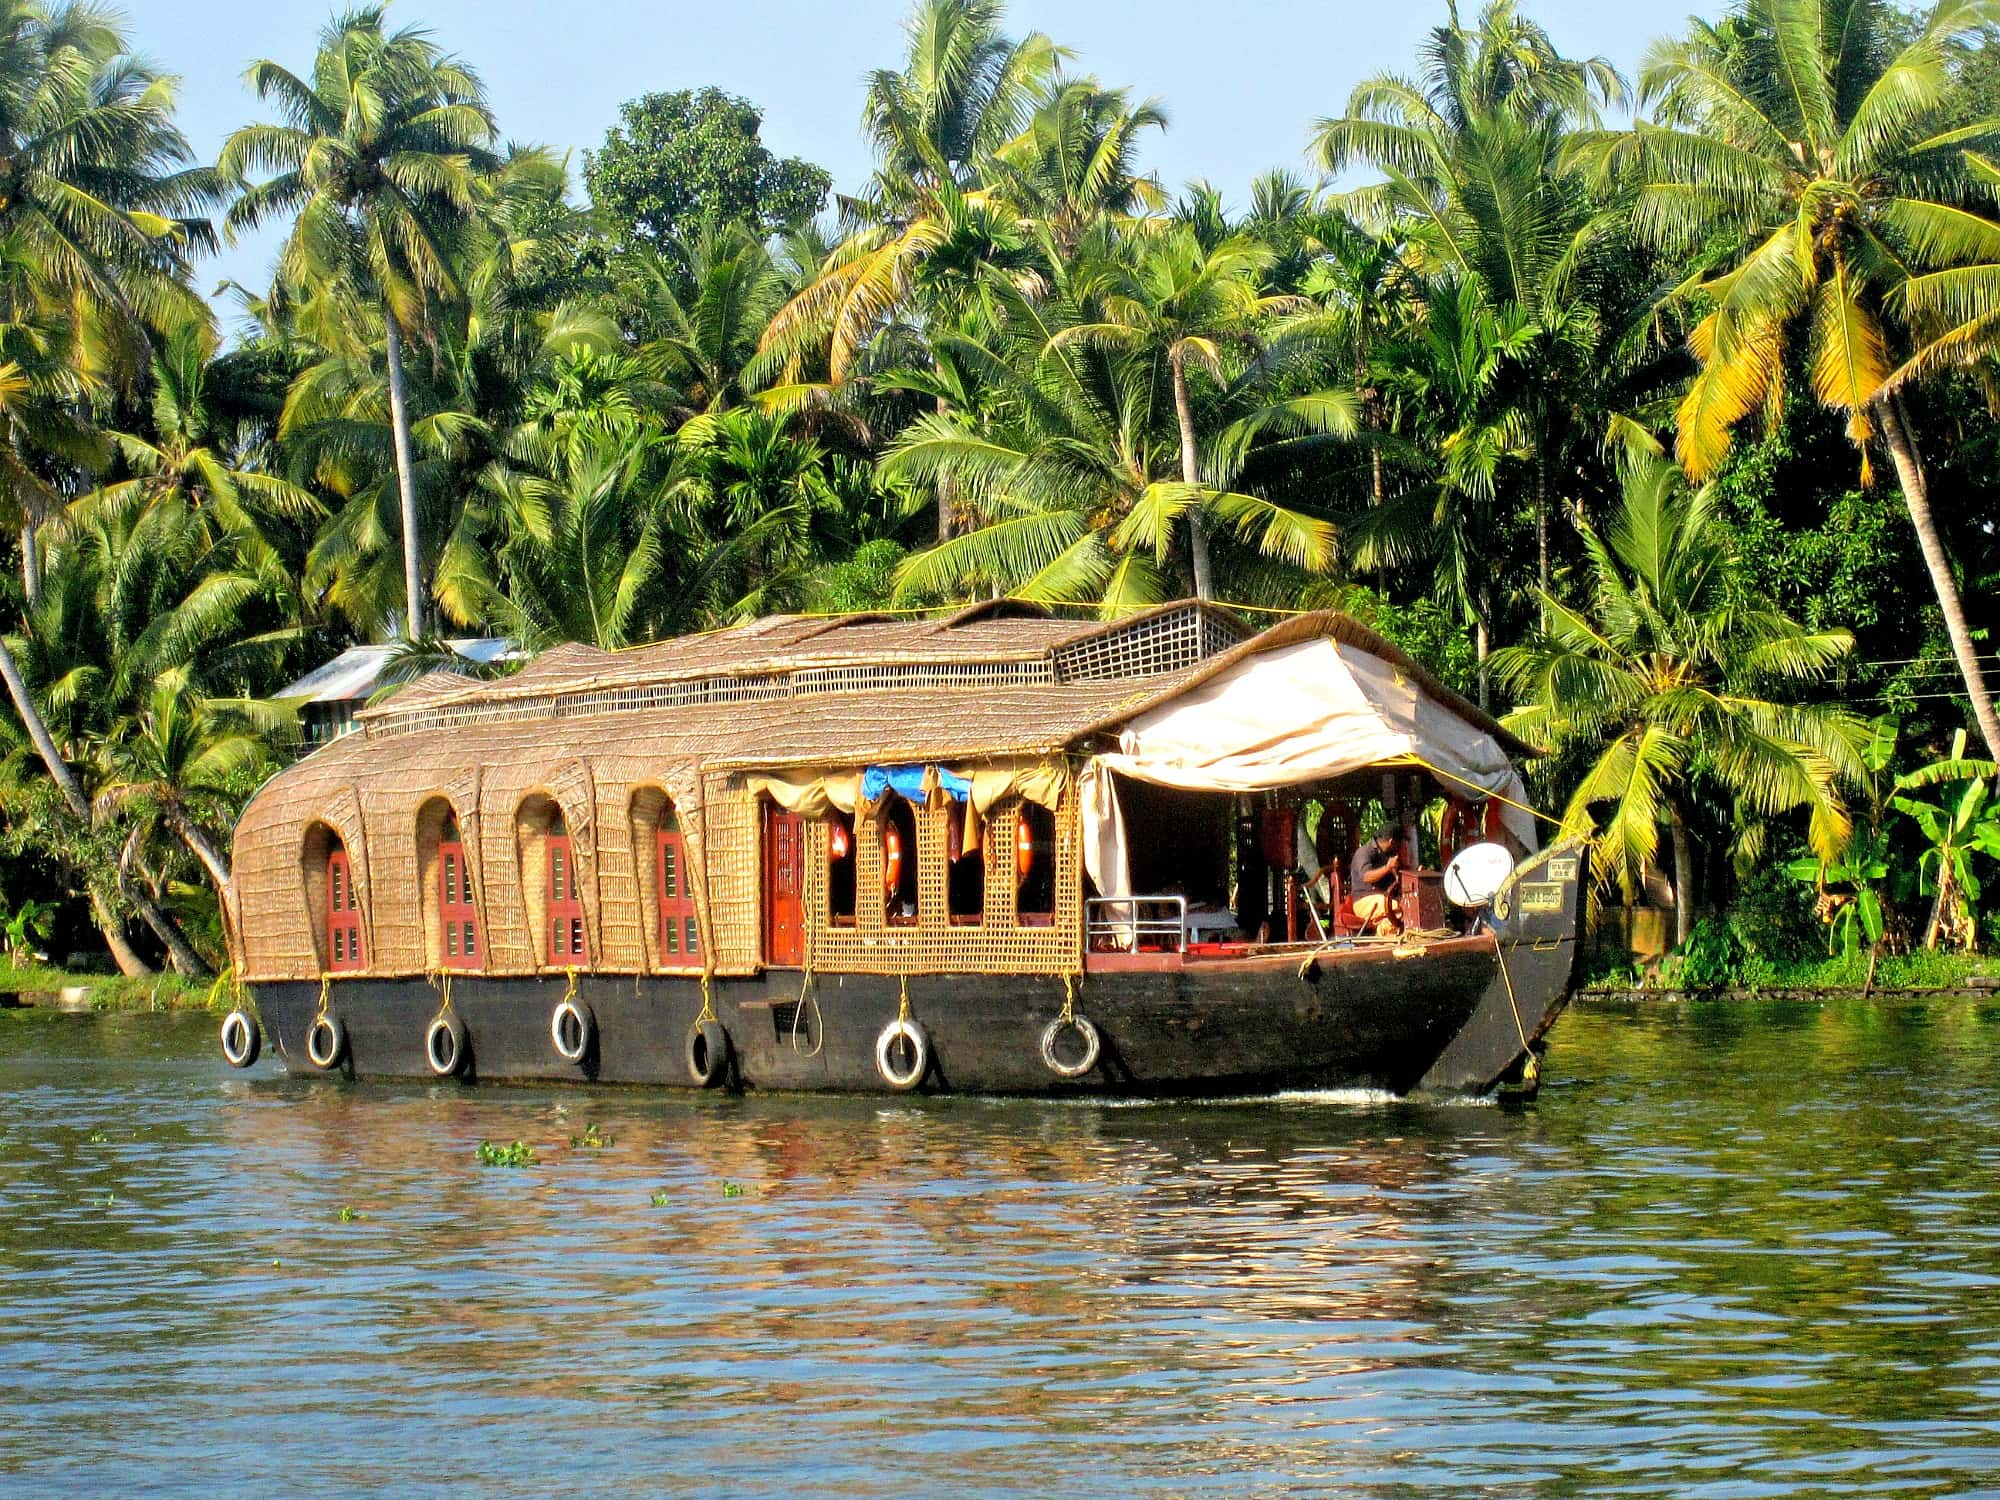 A houseboat in Kerala, India with kids